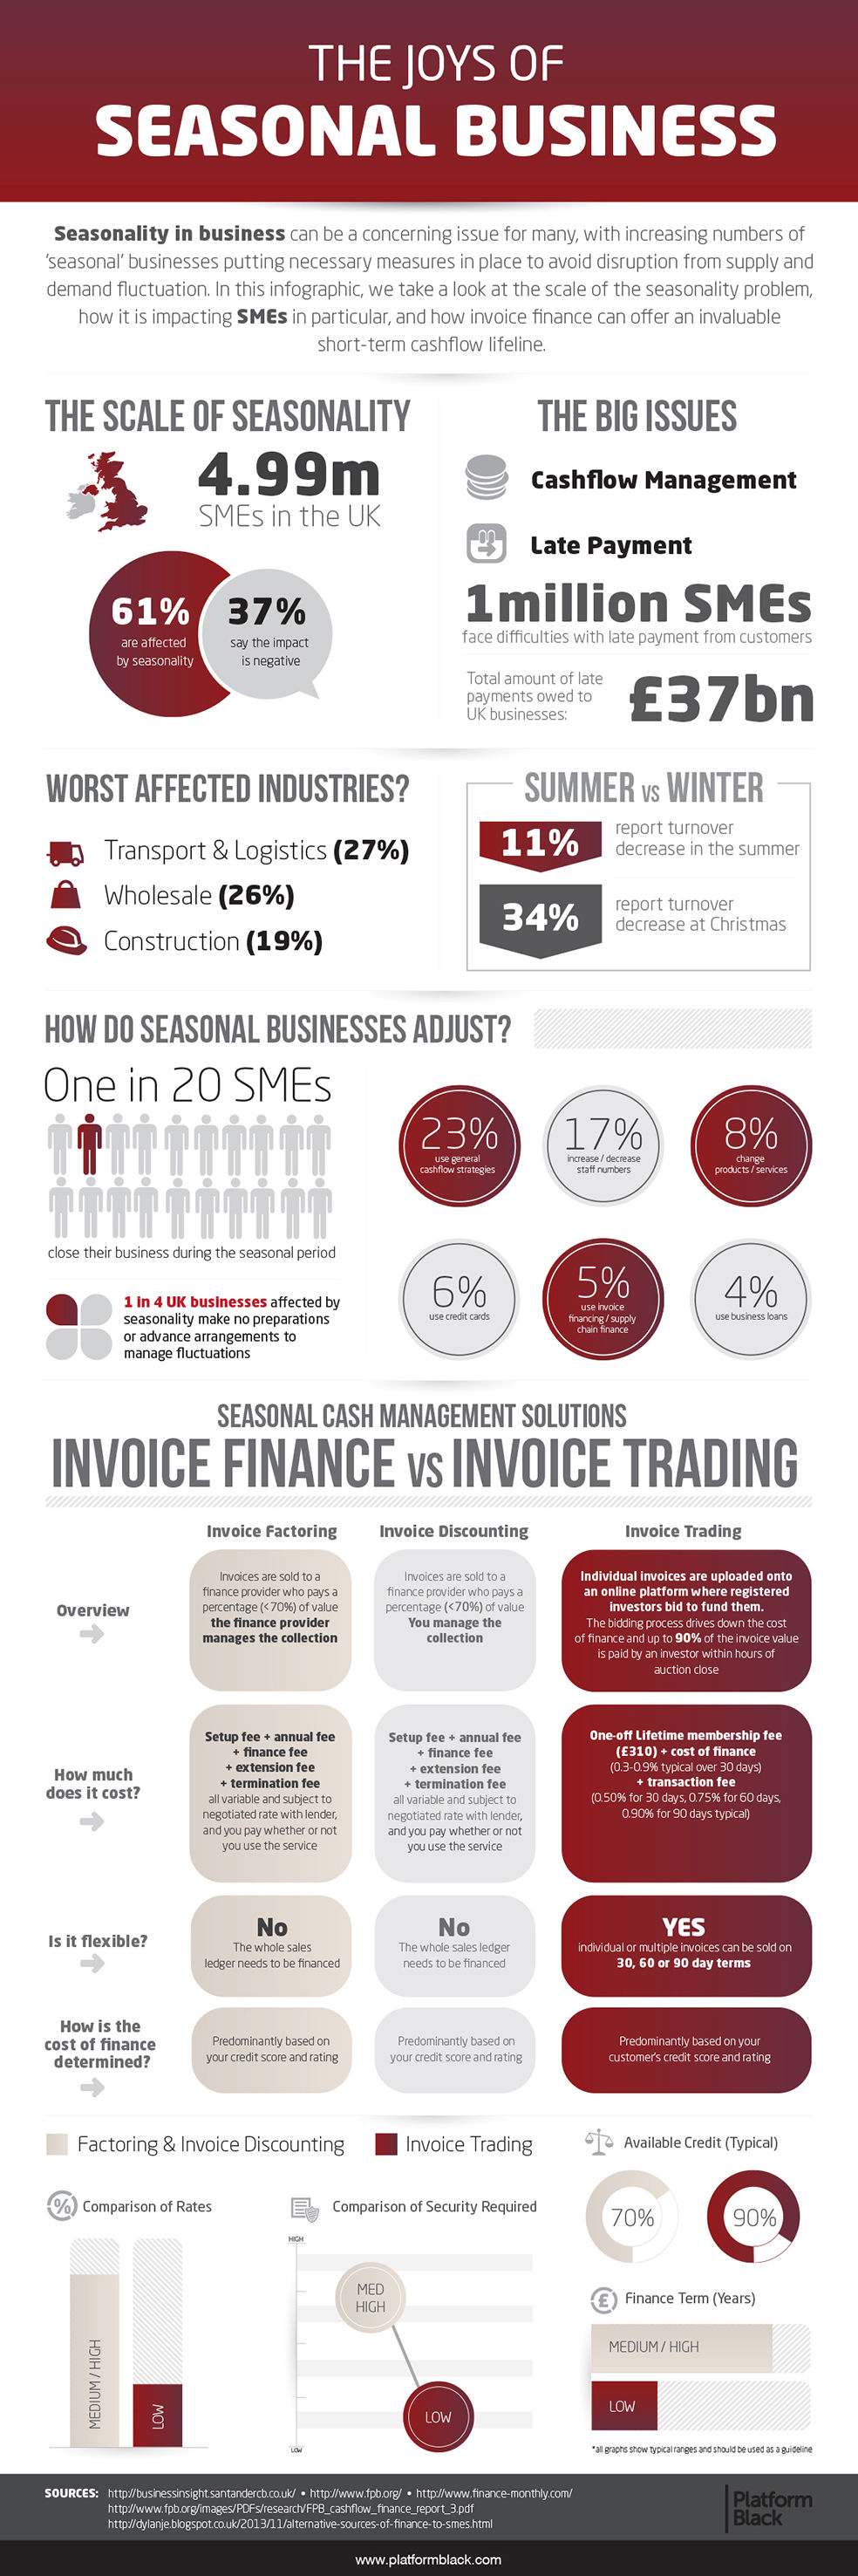 joys-of-seasonal-business-infographic